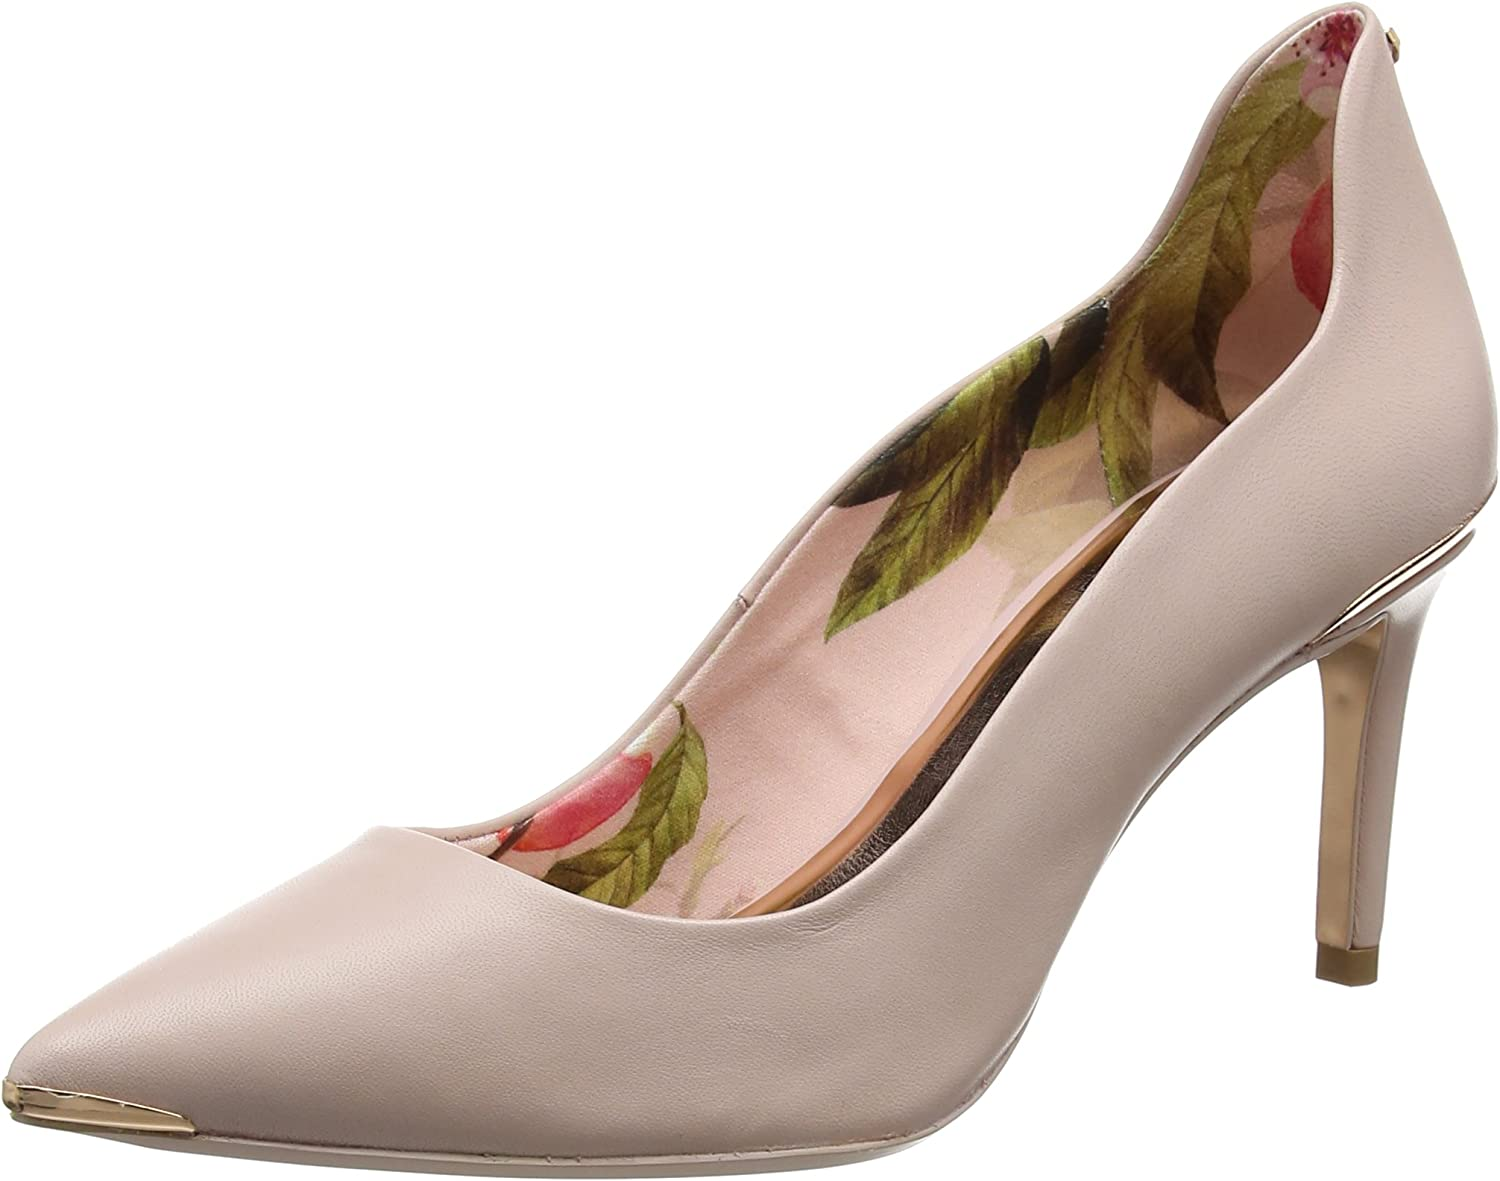 Ted Baker Women's Vyixin 2 in Blossom Pink